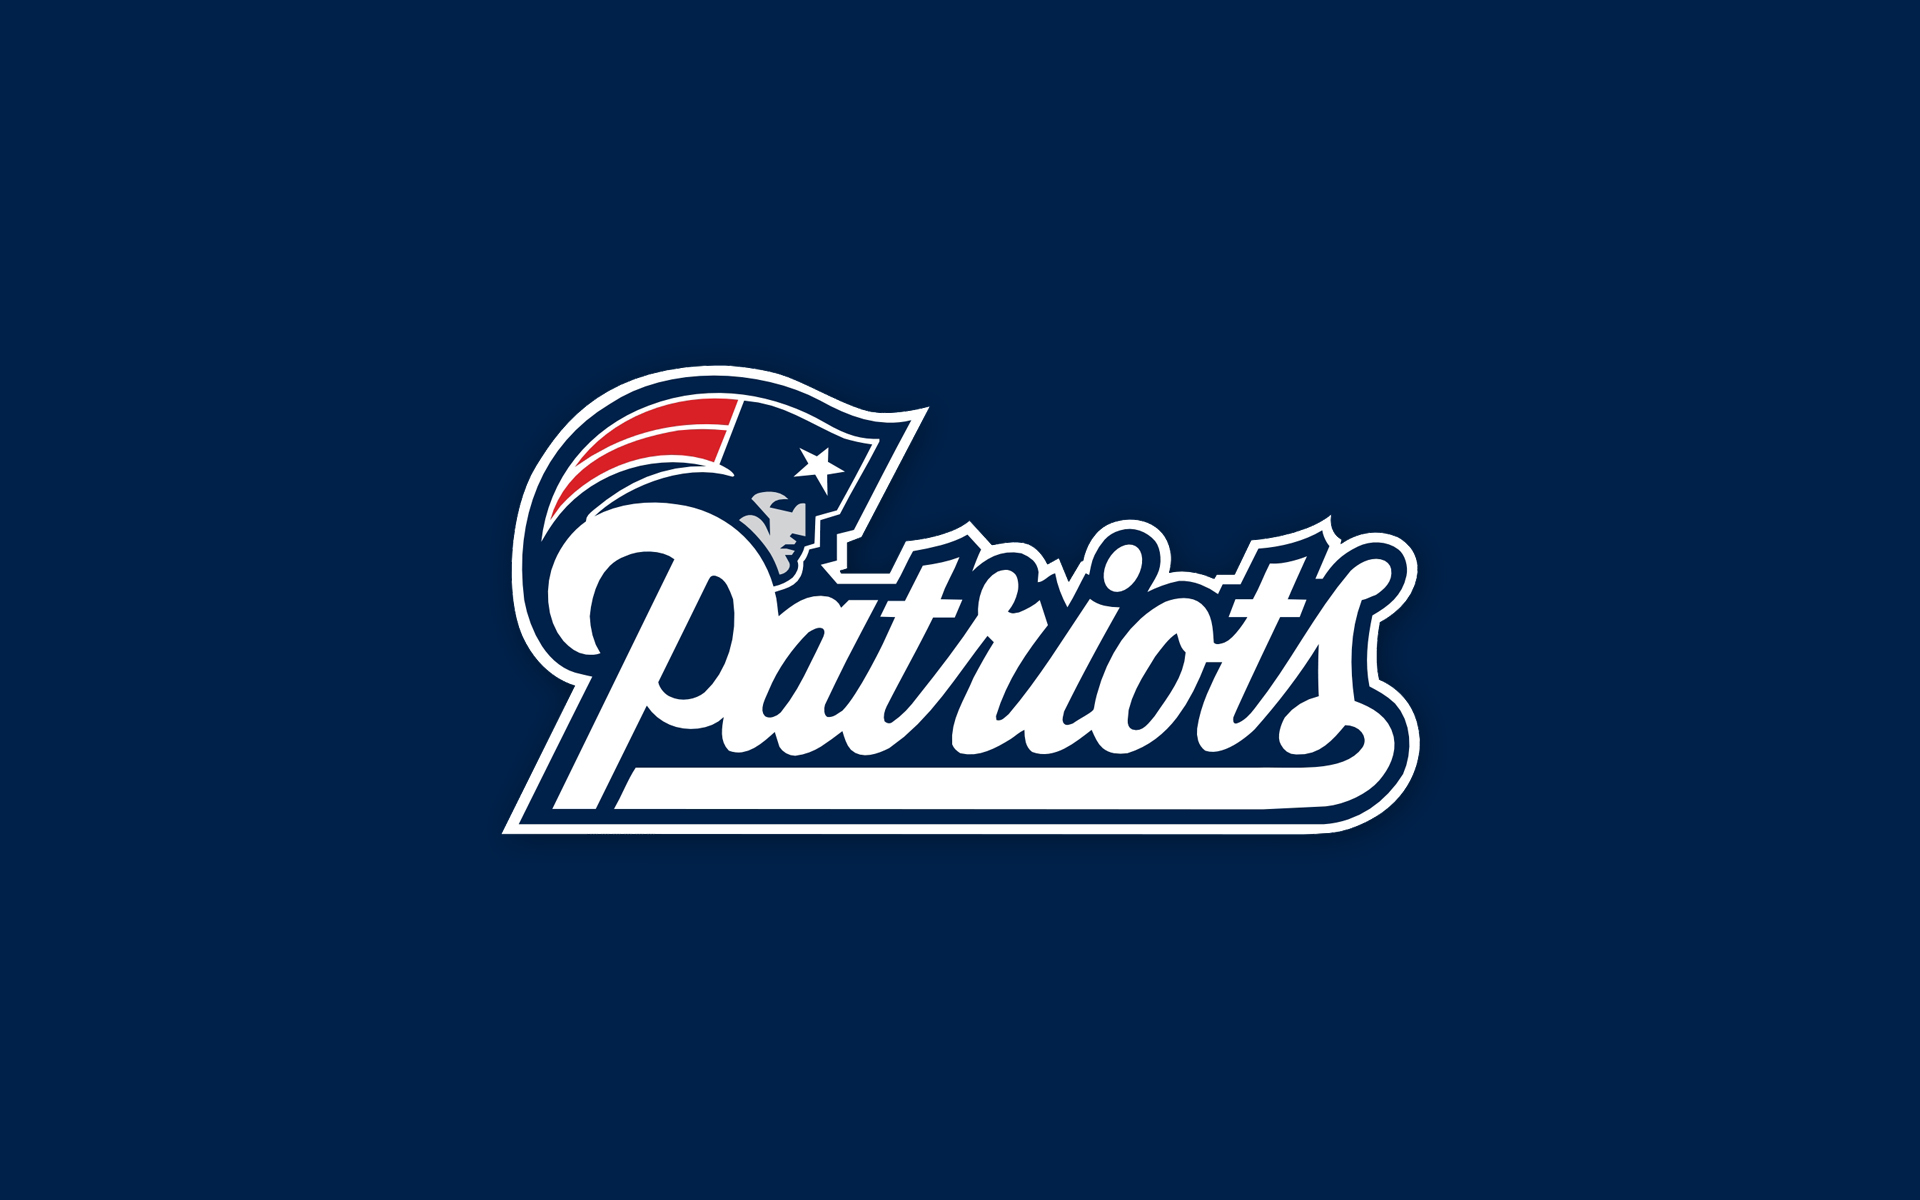 Awesome New England Patriots wallpaper Pats Pulpit 1920x1200 1920x1200